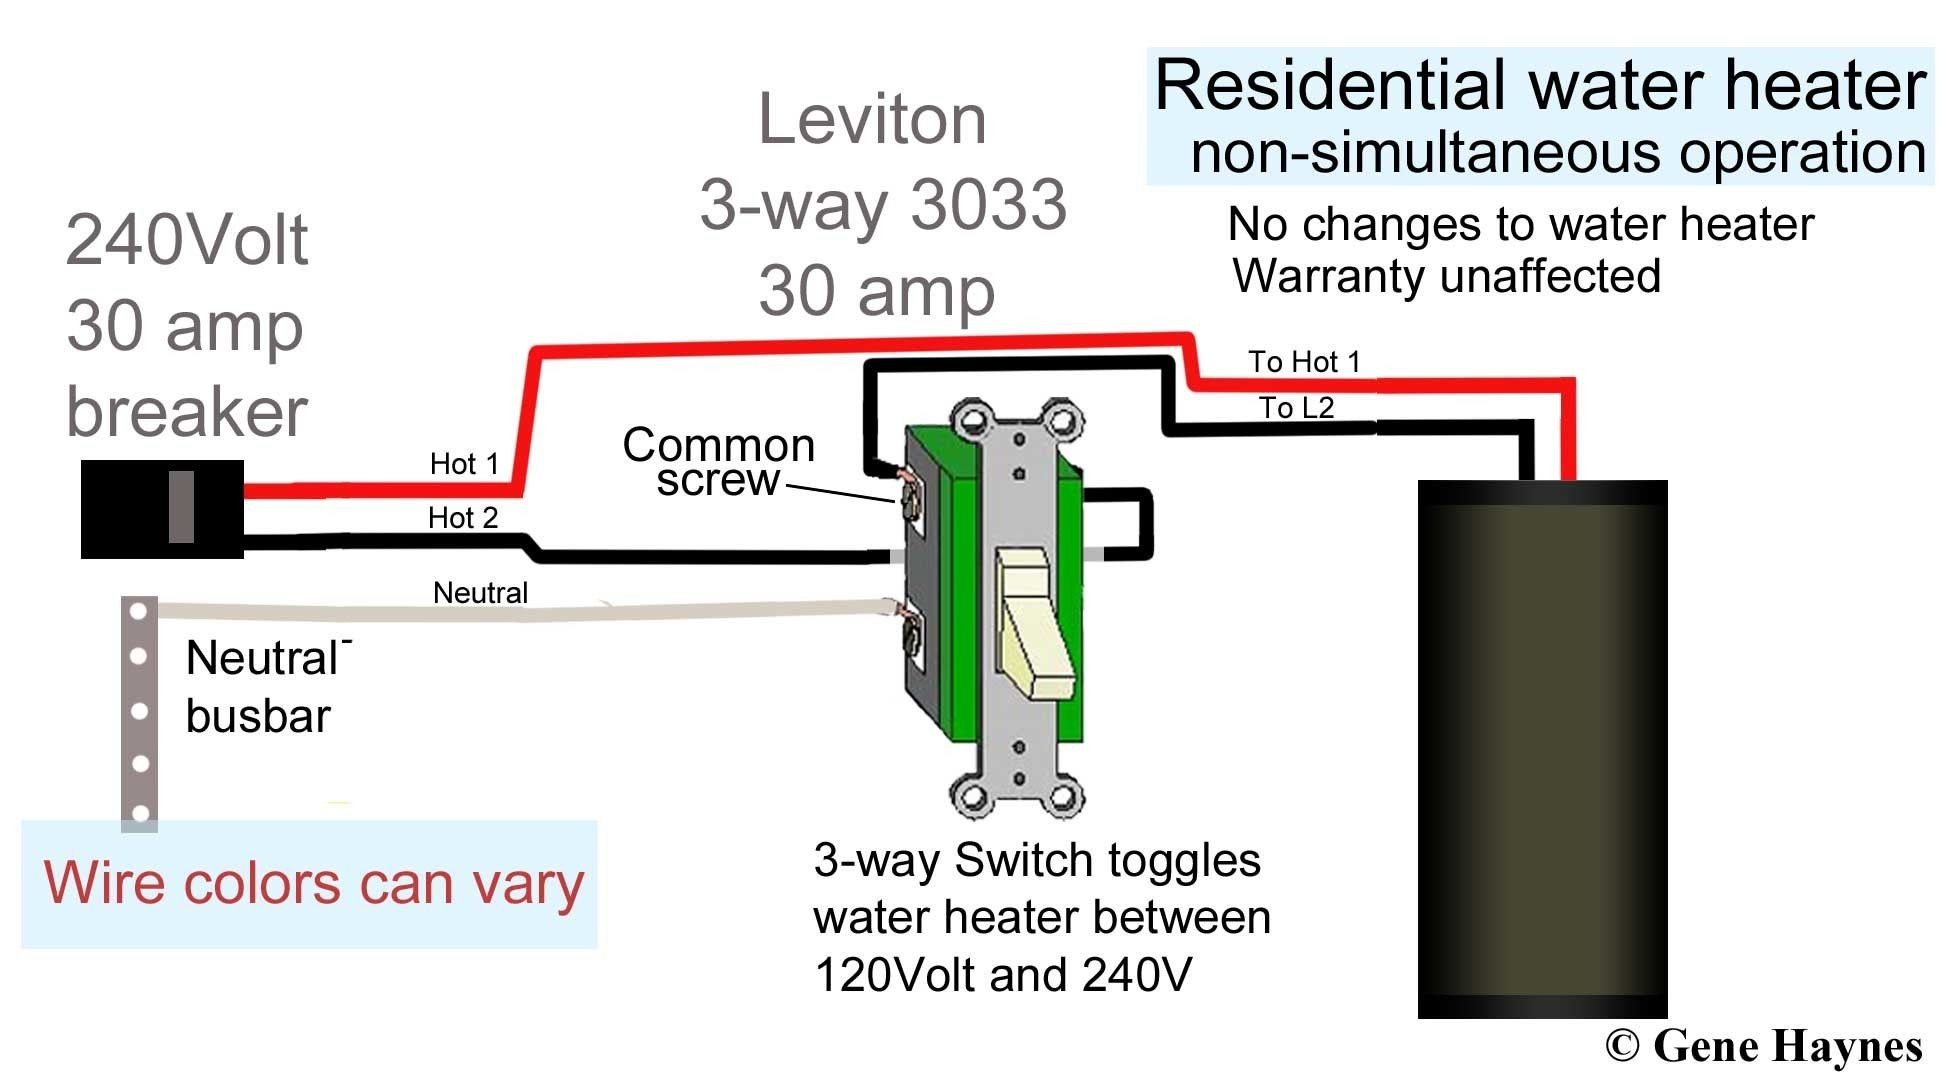 New Wiring Gfci To Switch Diagram Diagram Diagramsample Diagramtemplate Wiringdiagram Diagramcha Light Switch Wiring 3 Way Switch Wiring Thermostat Wiring